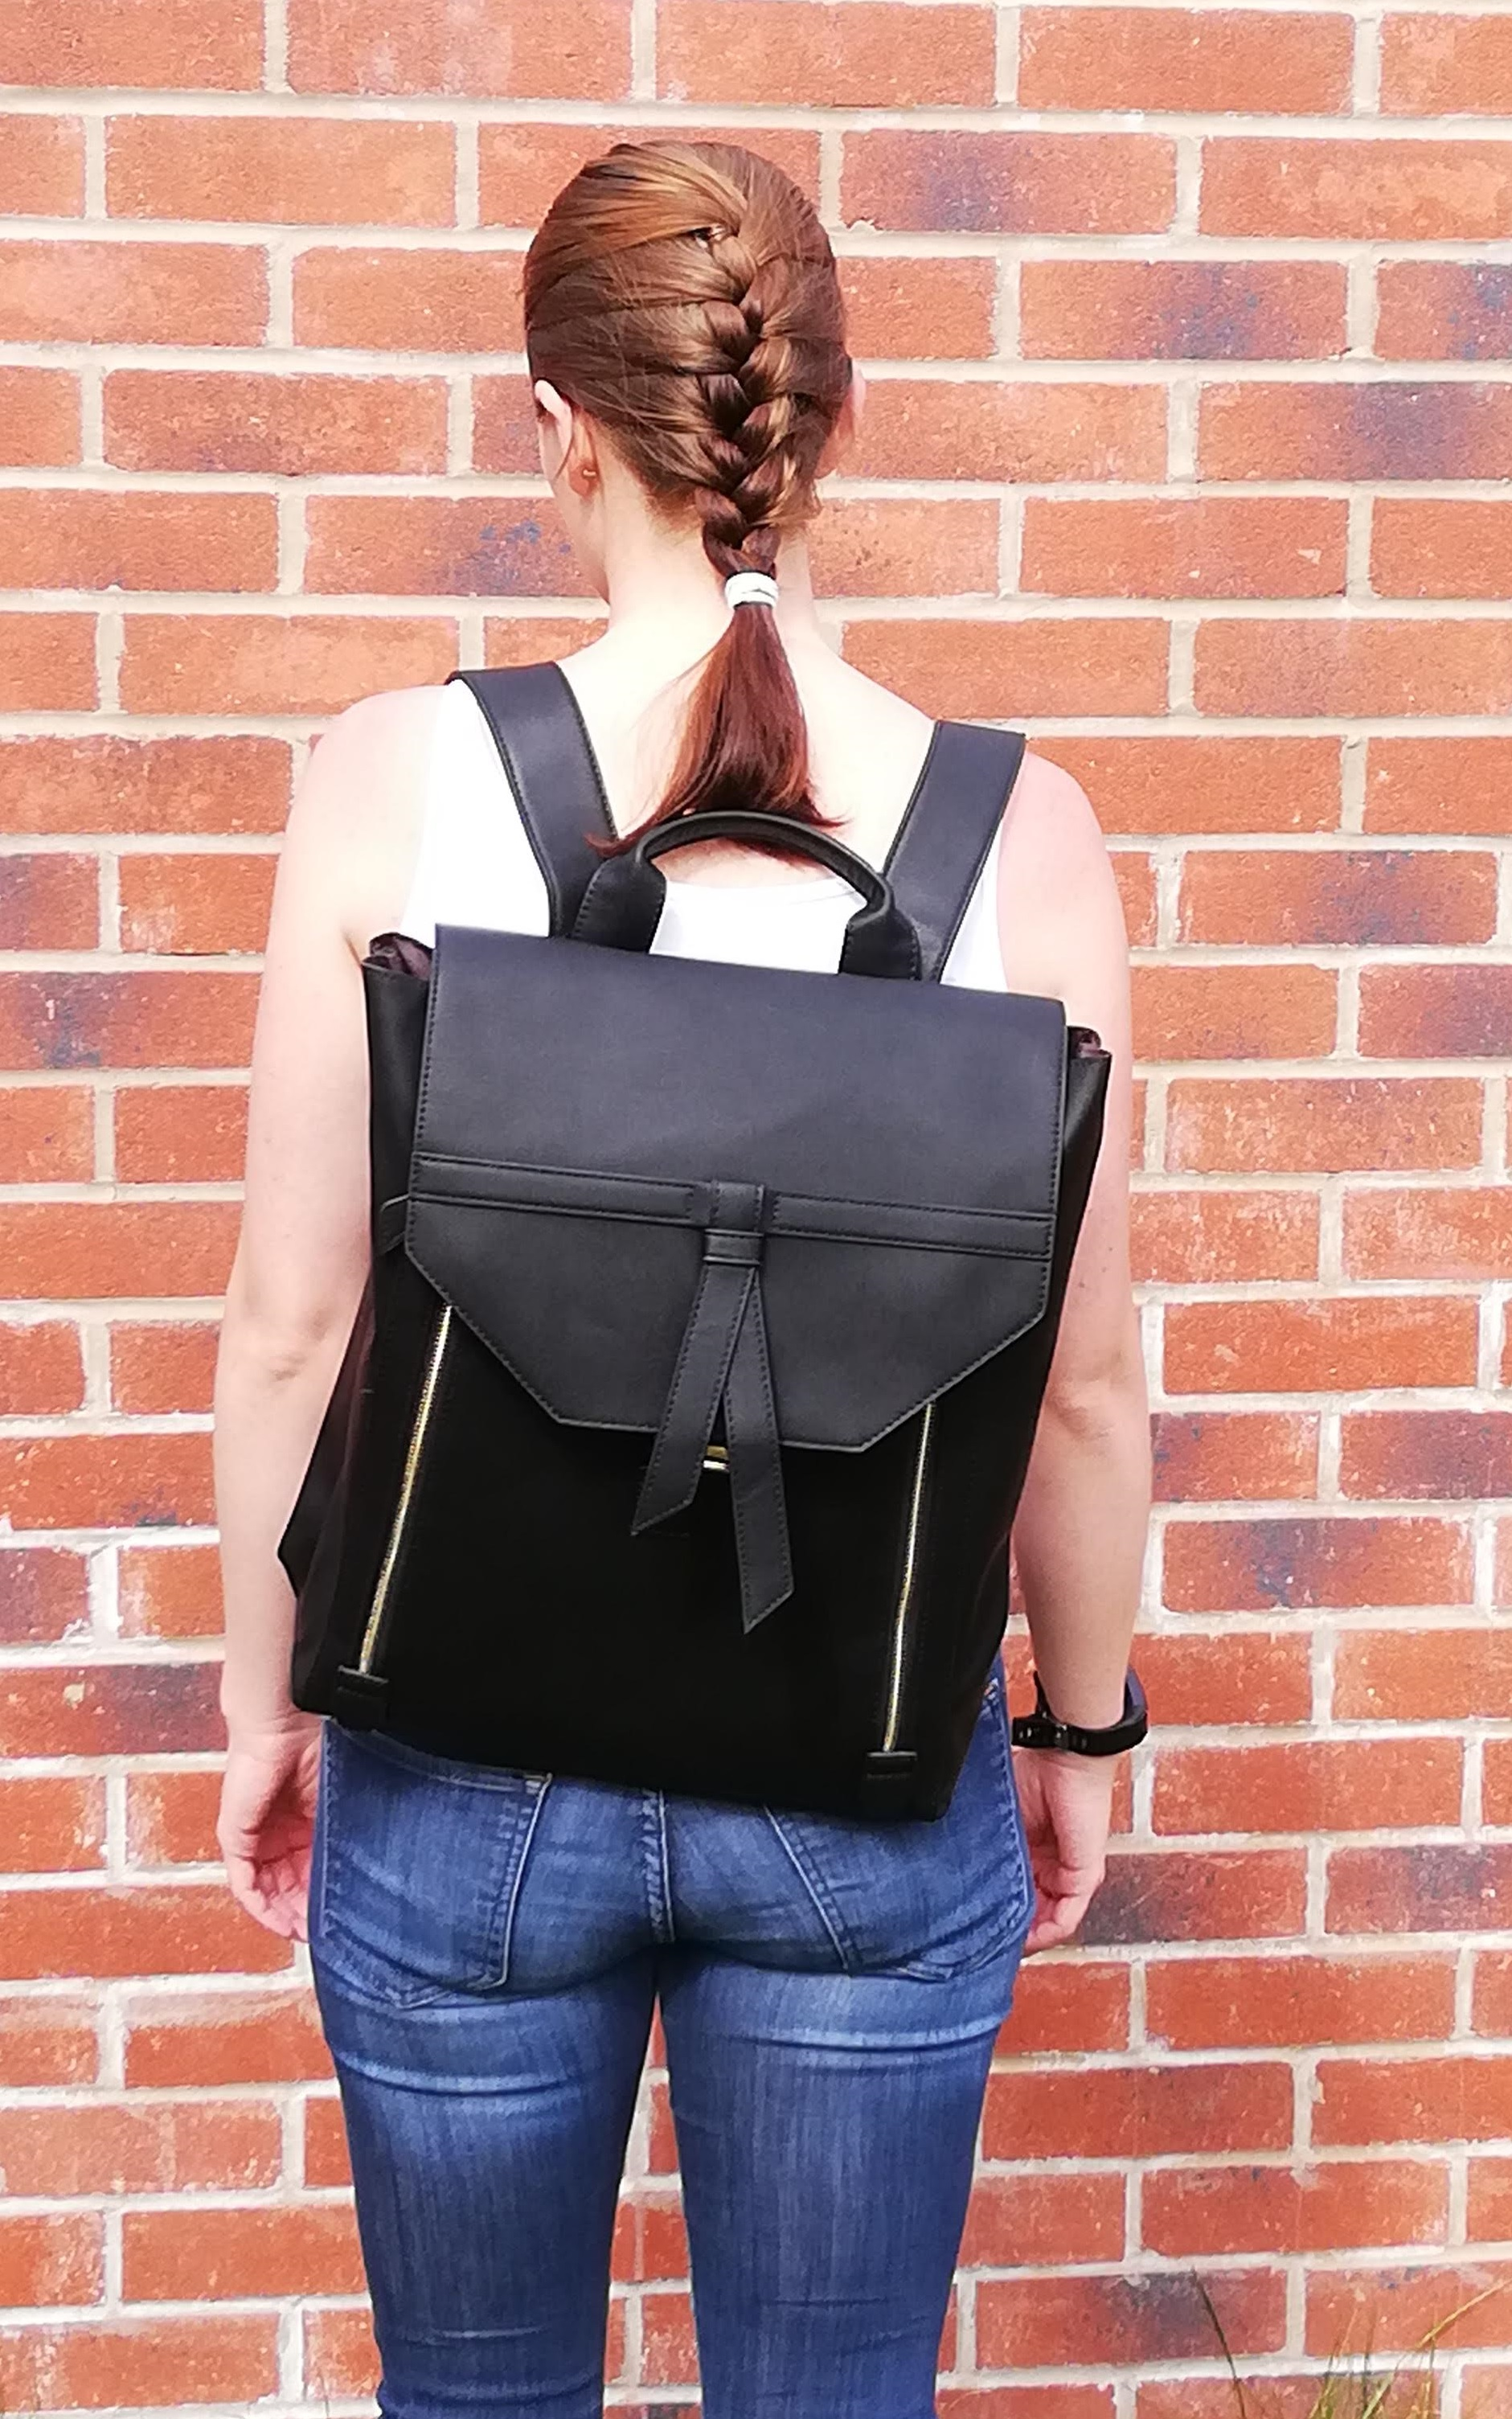 Review of the Stylish Laptop Rucksack from Estarer